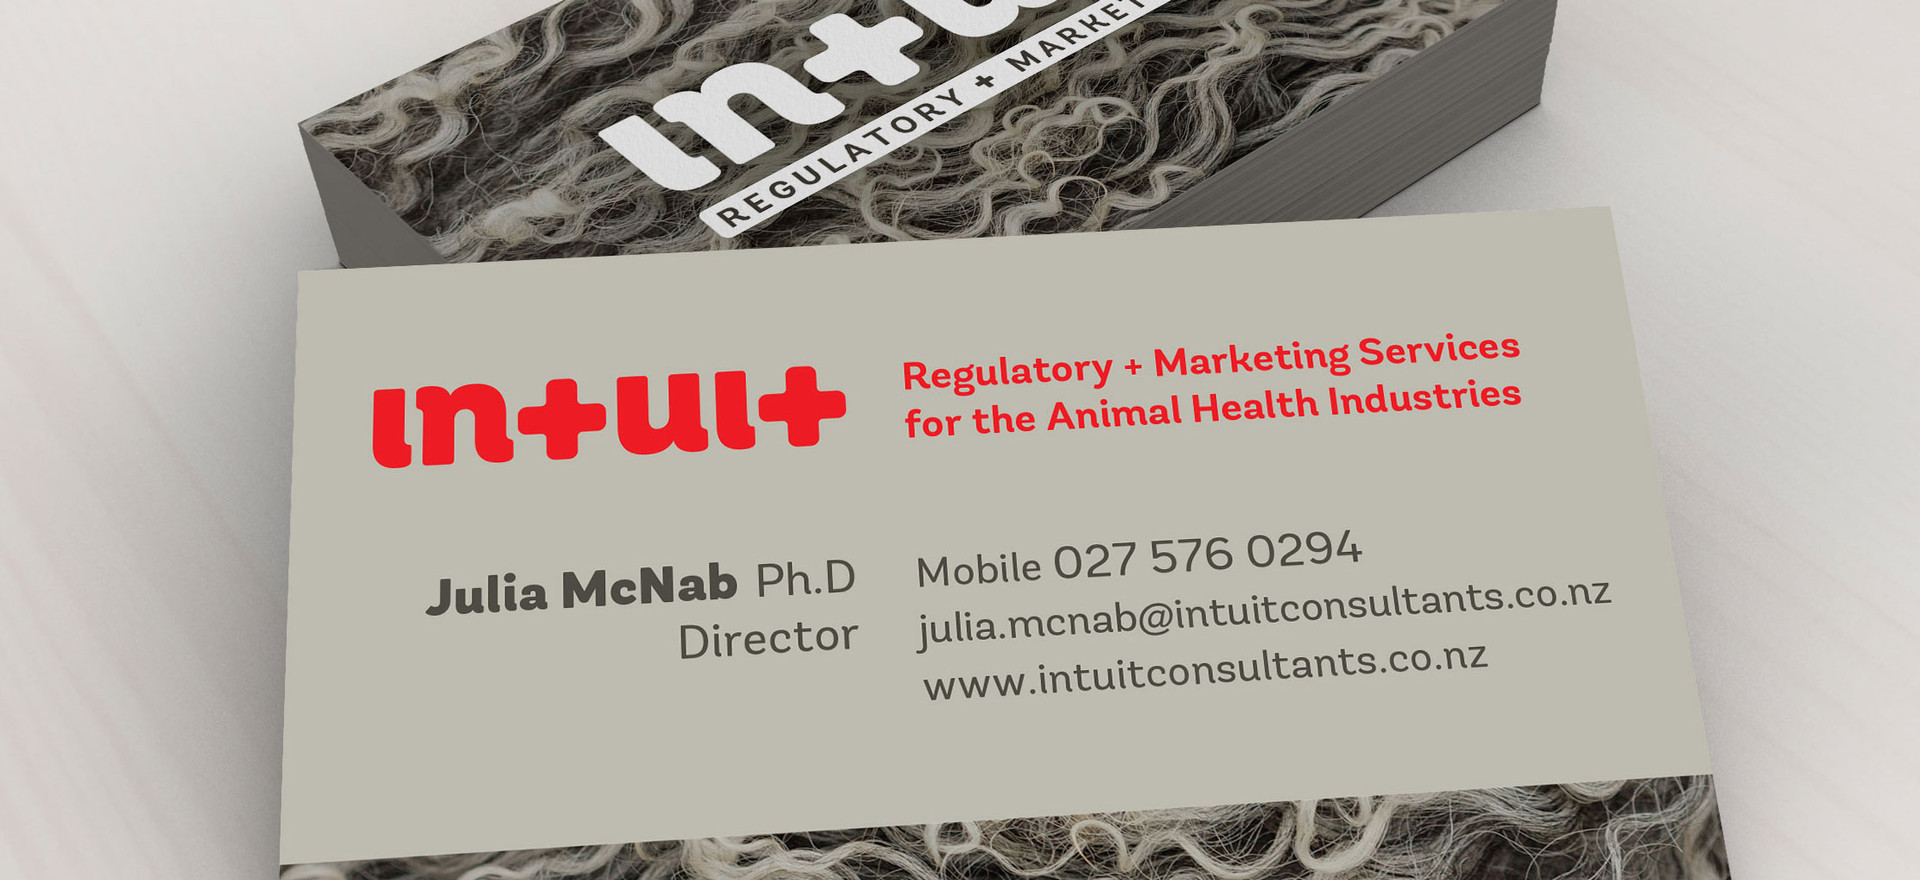 Intuit business card